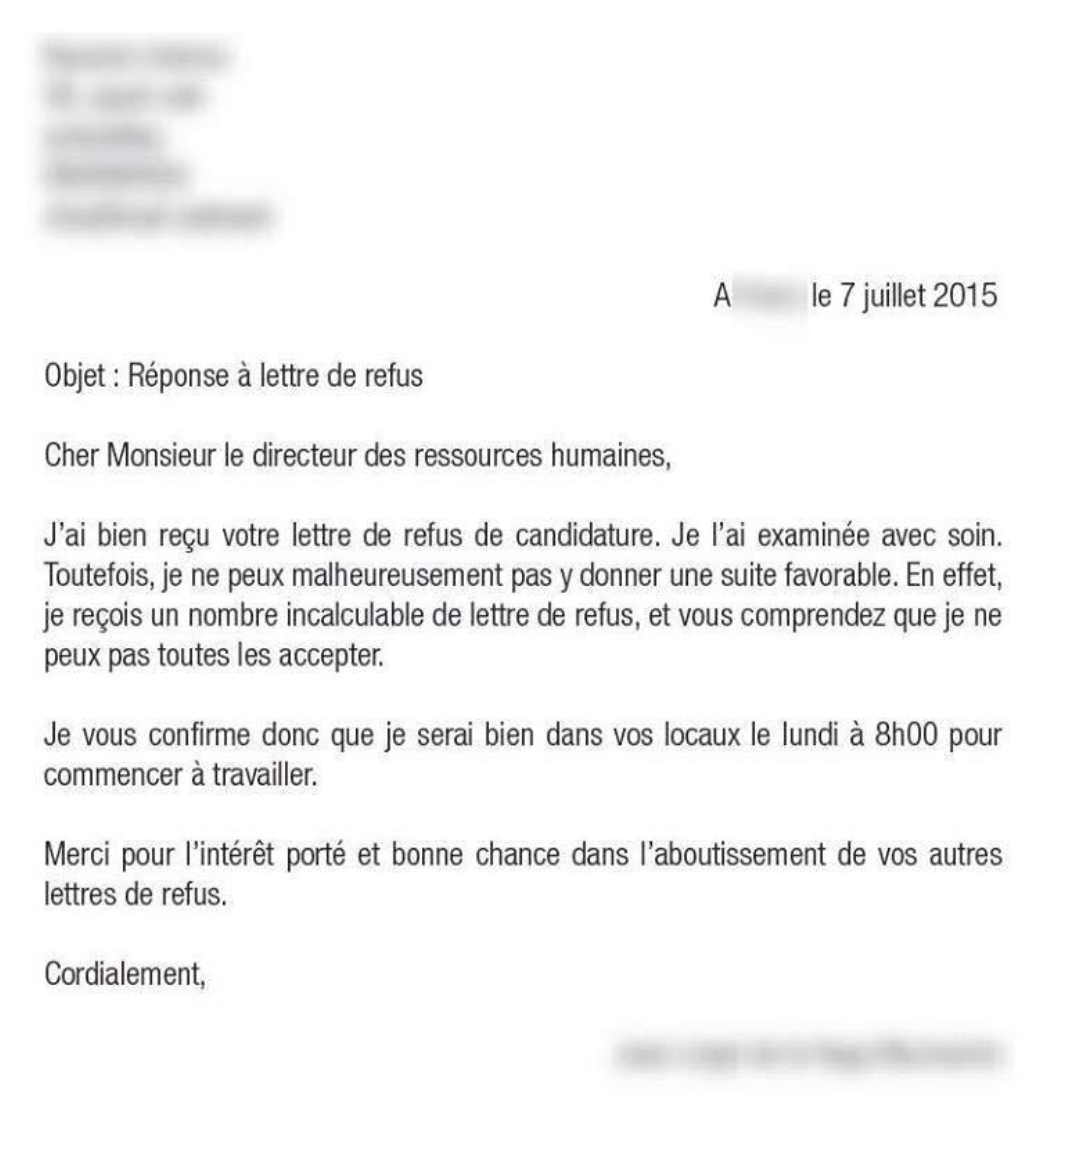 exemple de courrier refus de poste